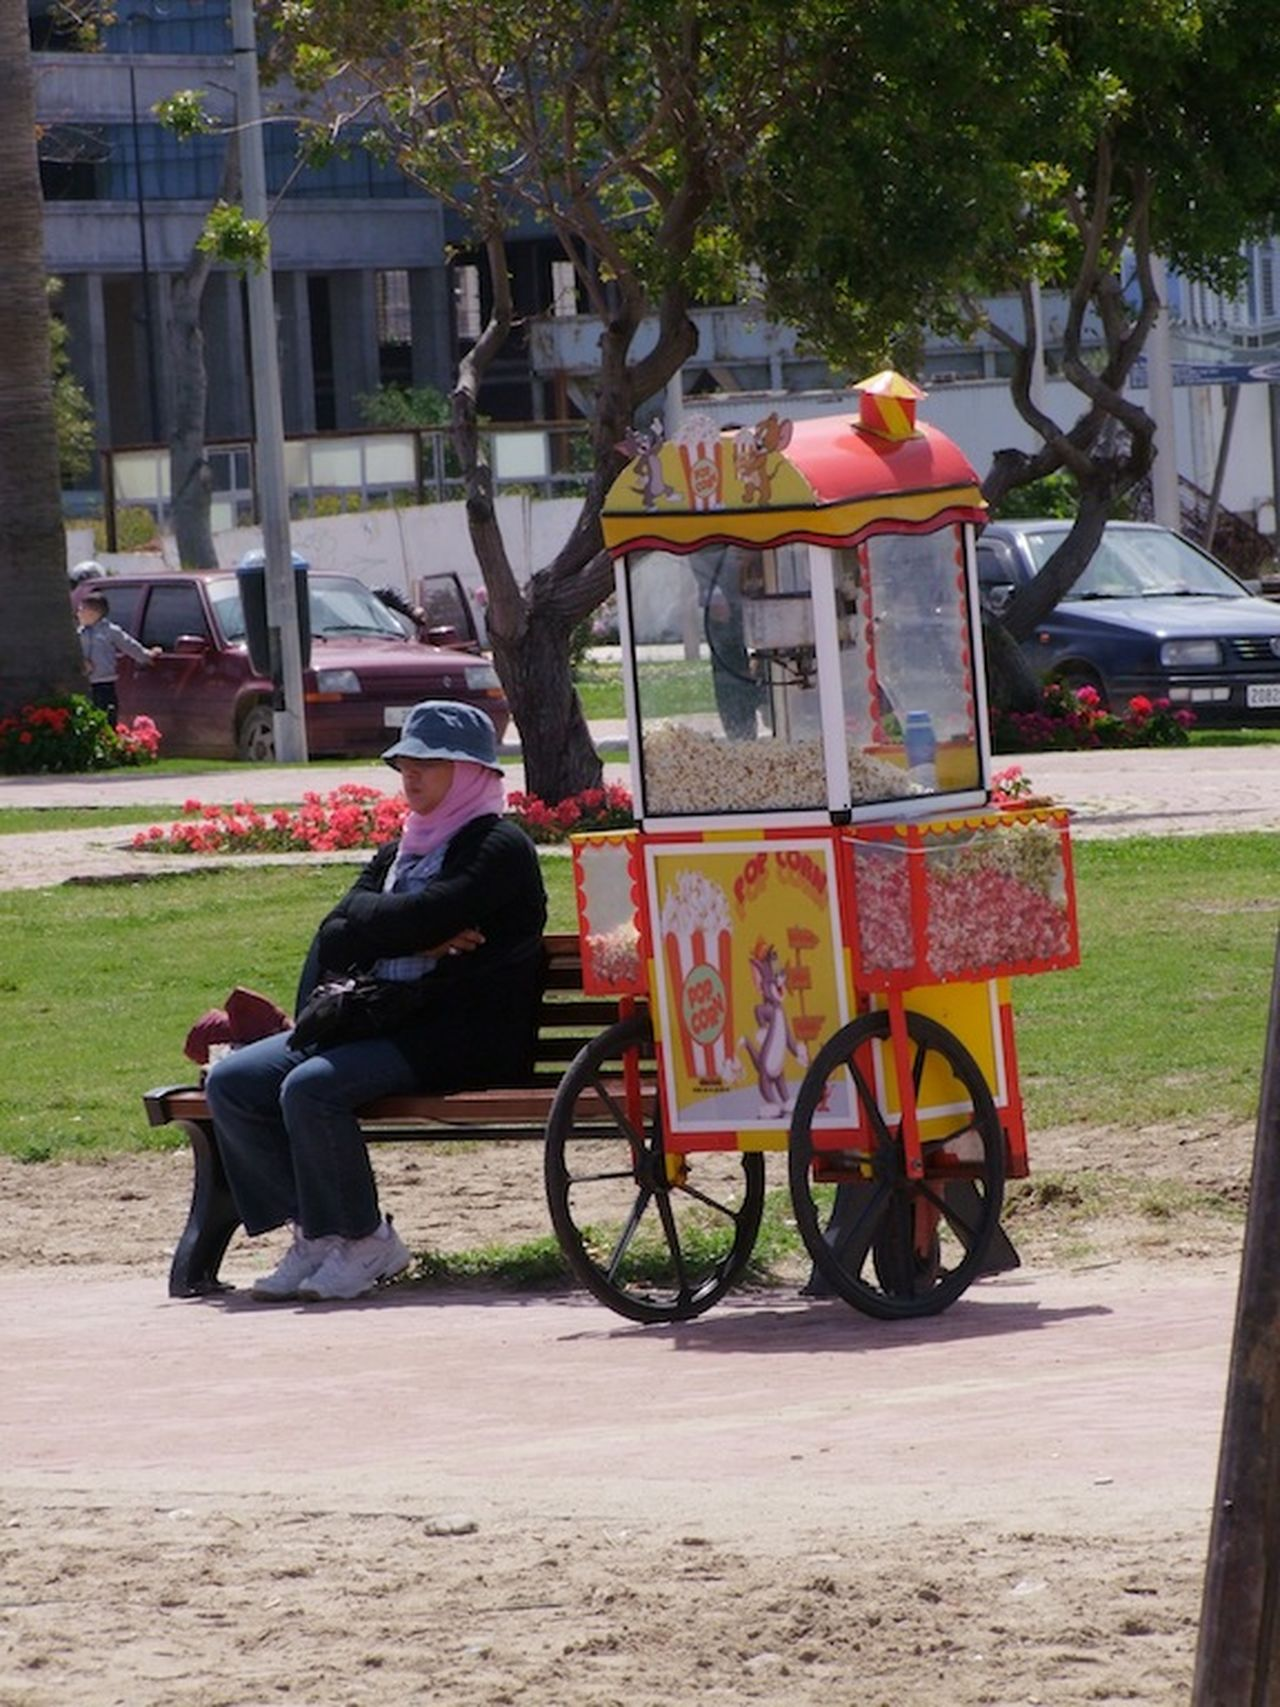 Popcorn Seller Beach Bench Cart Colourful Composition Culture Food Full Frame Lawn Making A Living Morocco Outdoor Photography Popcorn Popcorn Seller Sitting Snacks Tangier Tourism Tourist Attraction  Traditional Trees Woman